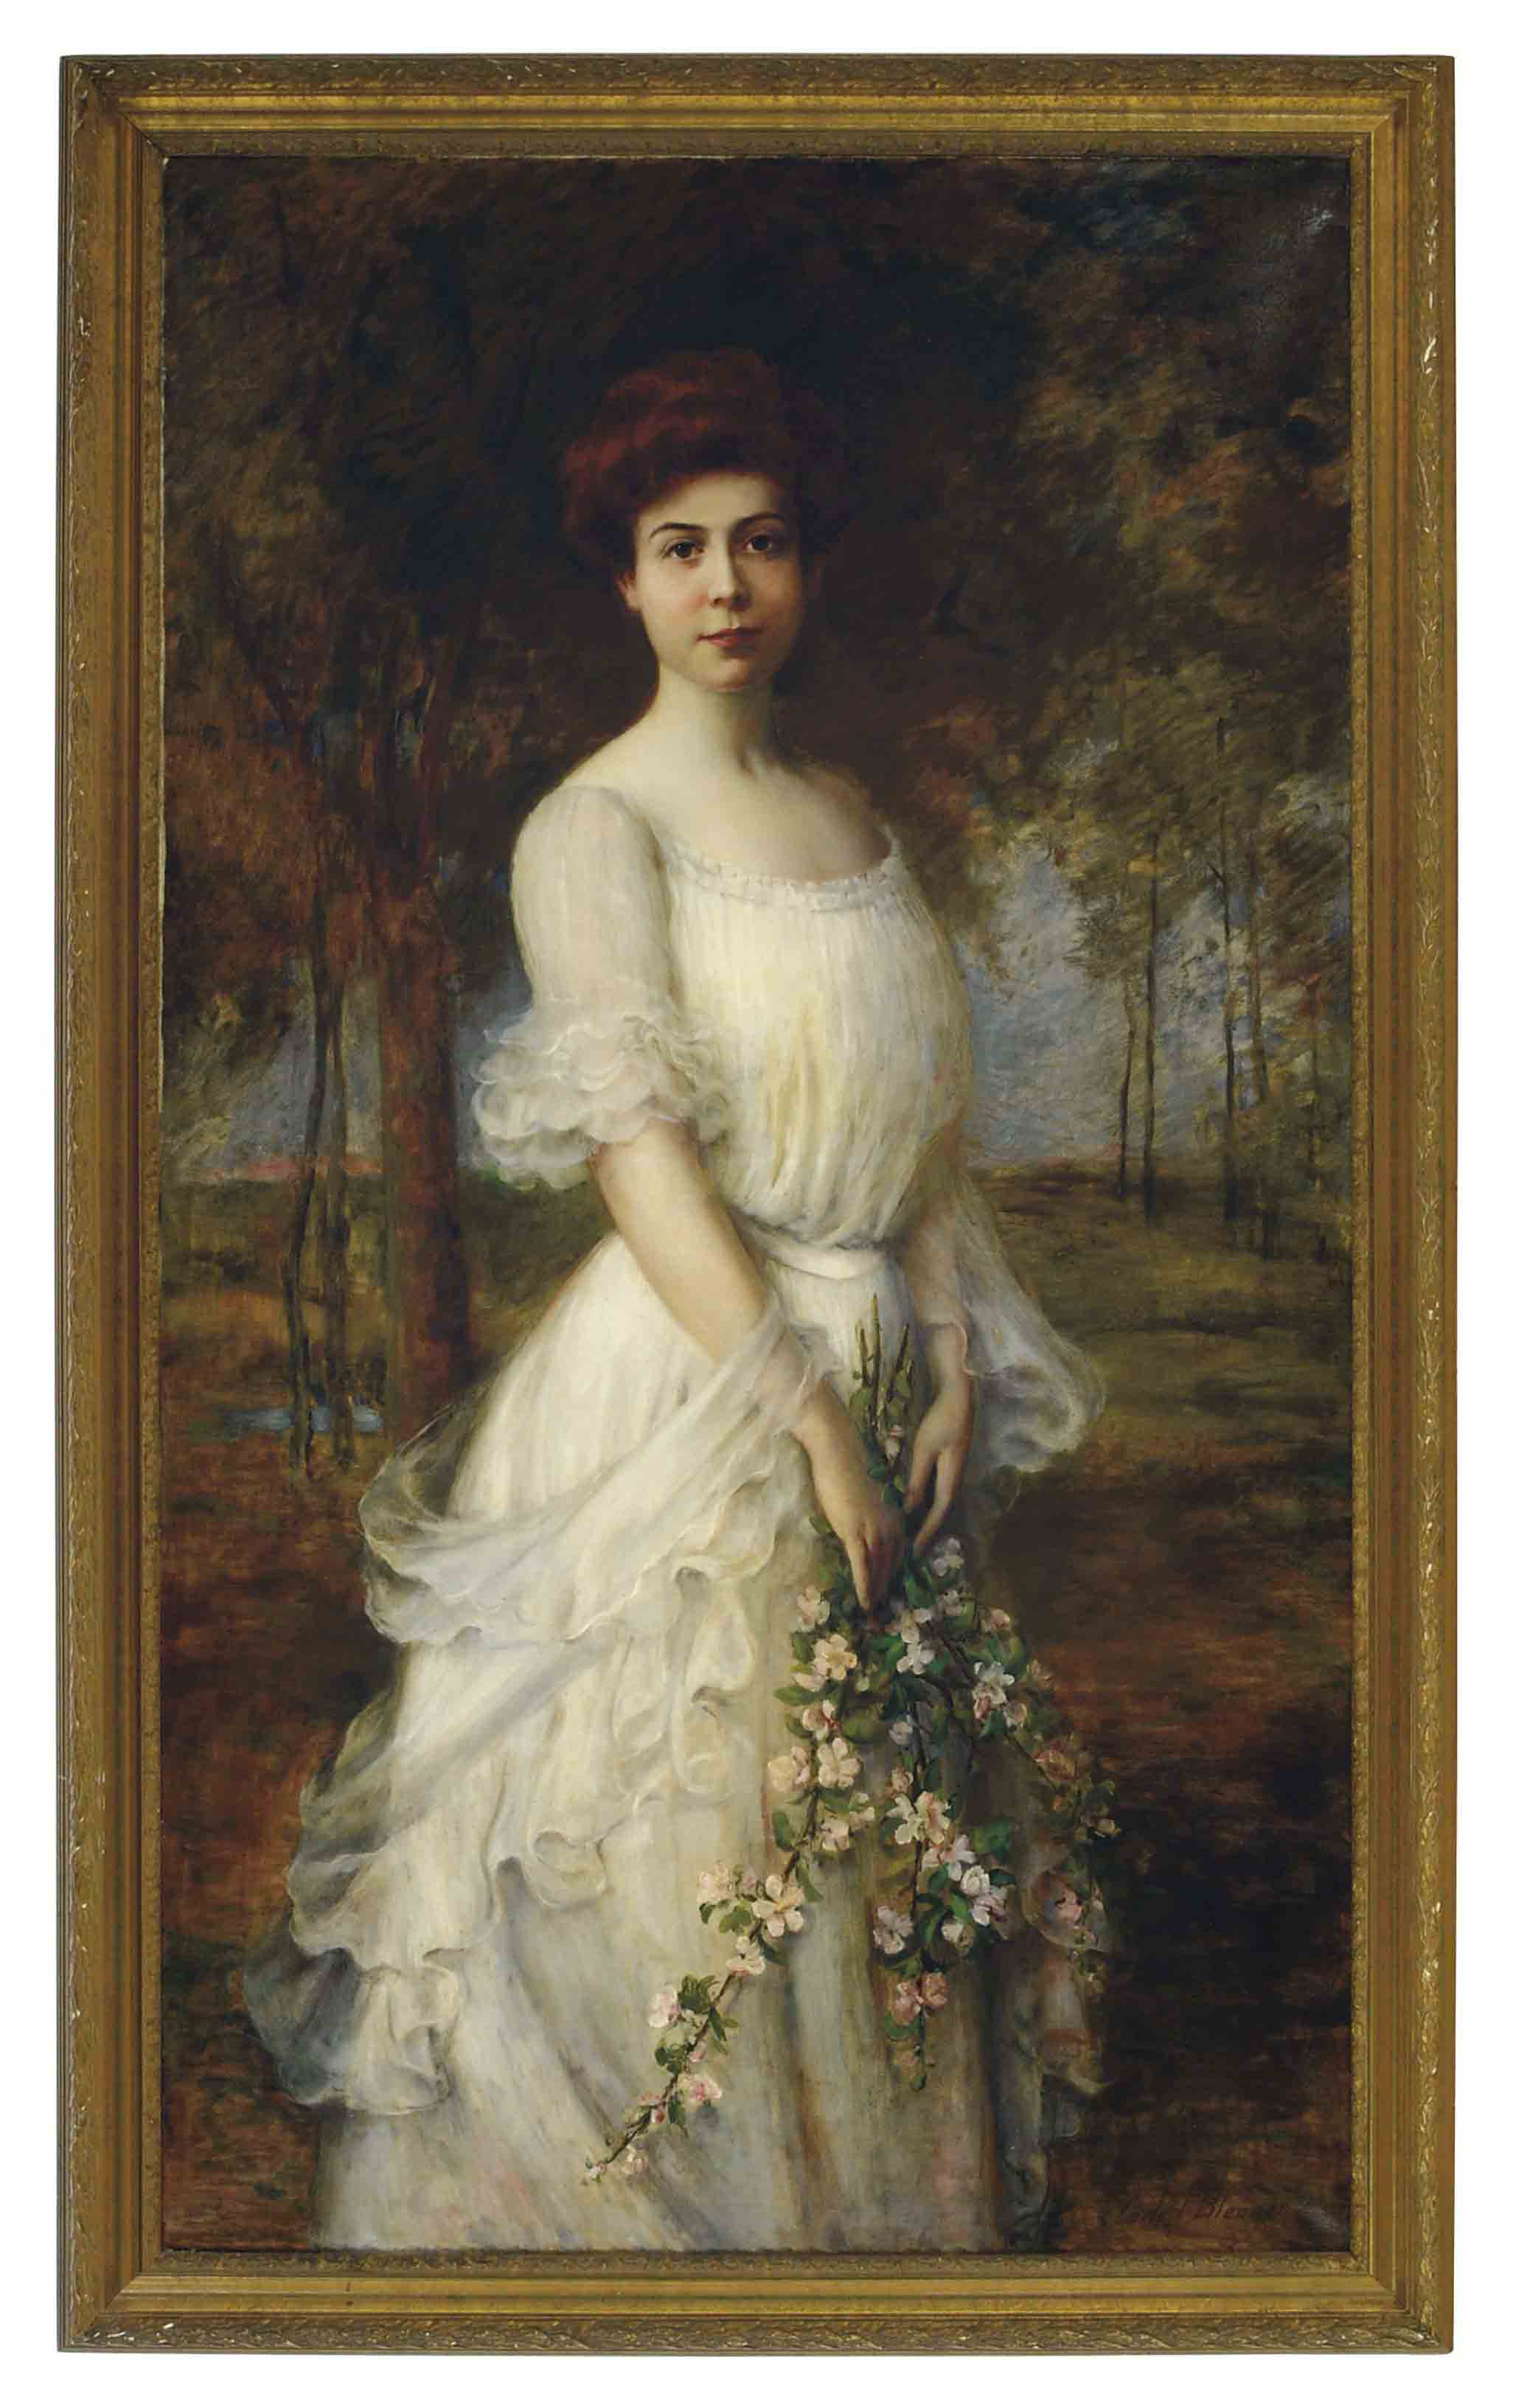 A beauty holding spring blossoms in a landscape